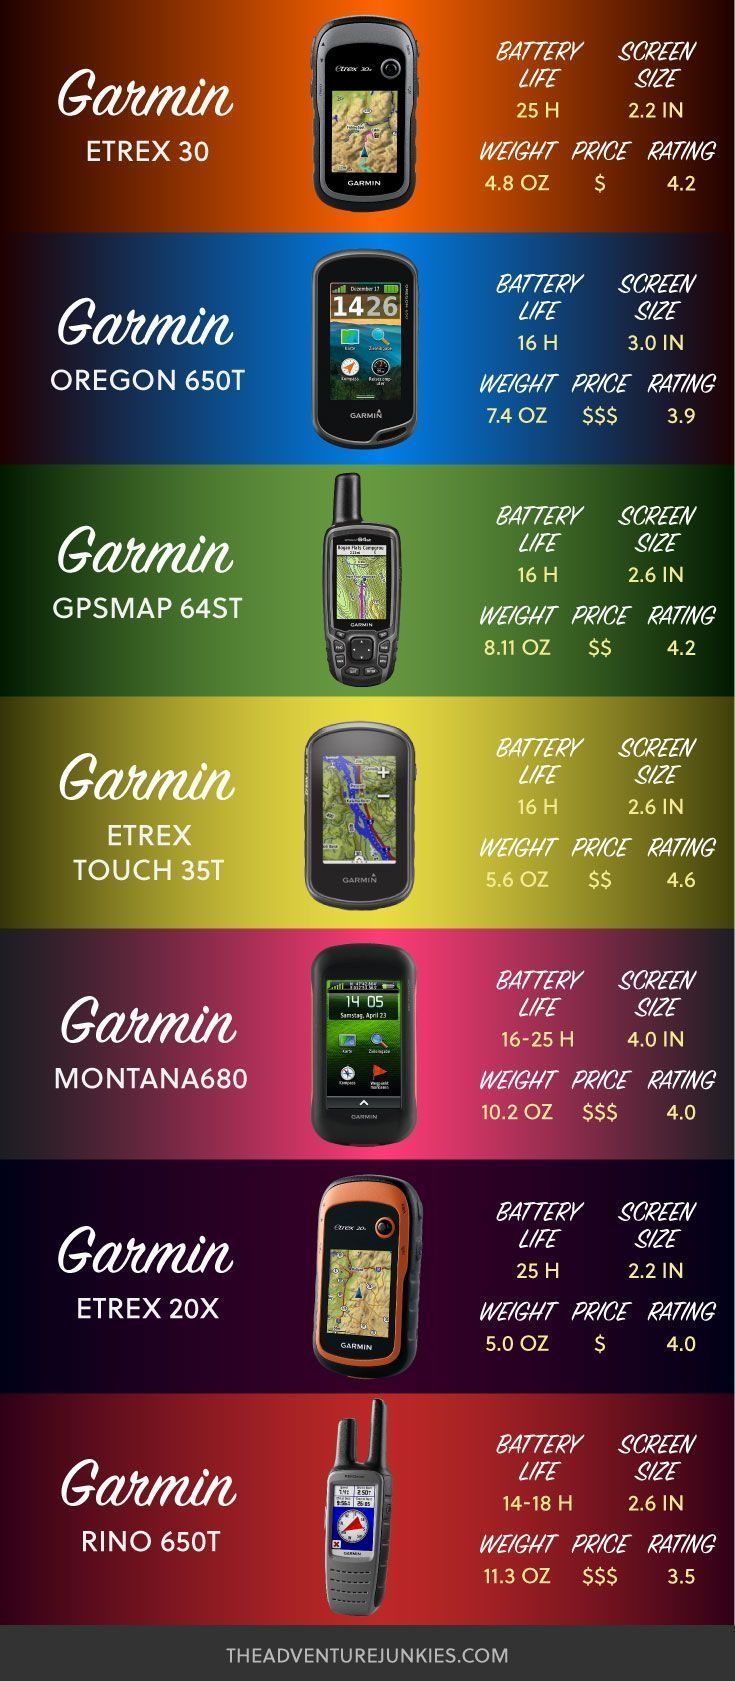 Best Hiking Gps Best Hiking Gear For Beginners Backpacking Gadgets Hiking Equipment List For Women Men And Best Hiking Gear Backpacking Gear Hiking Gear